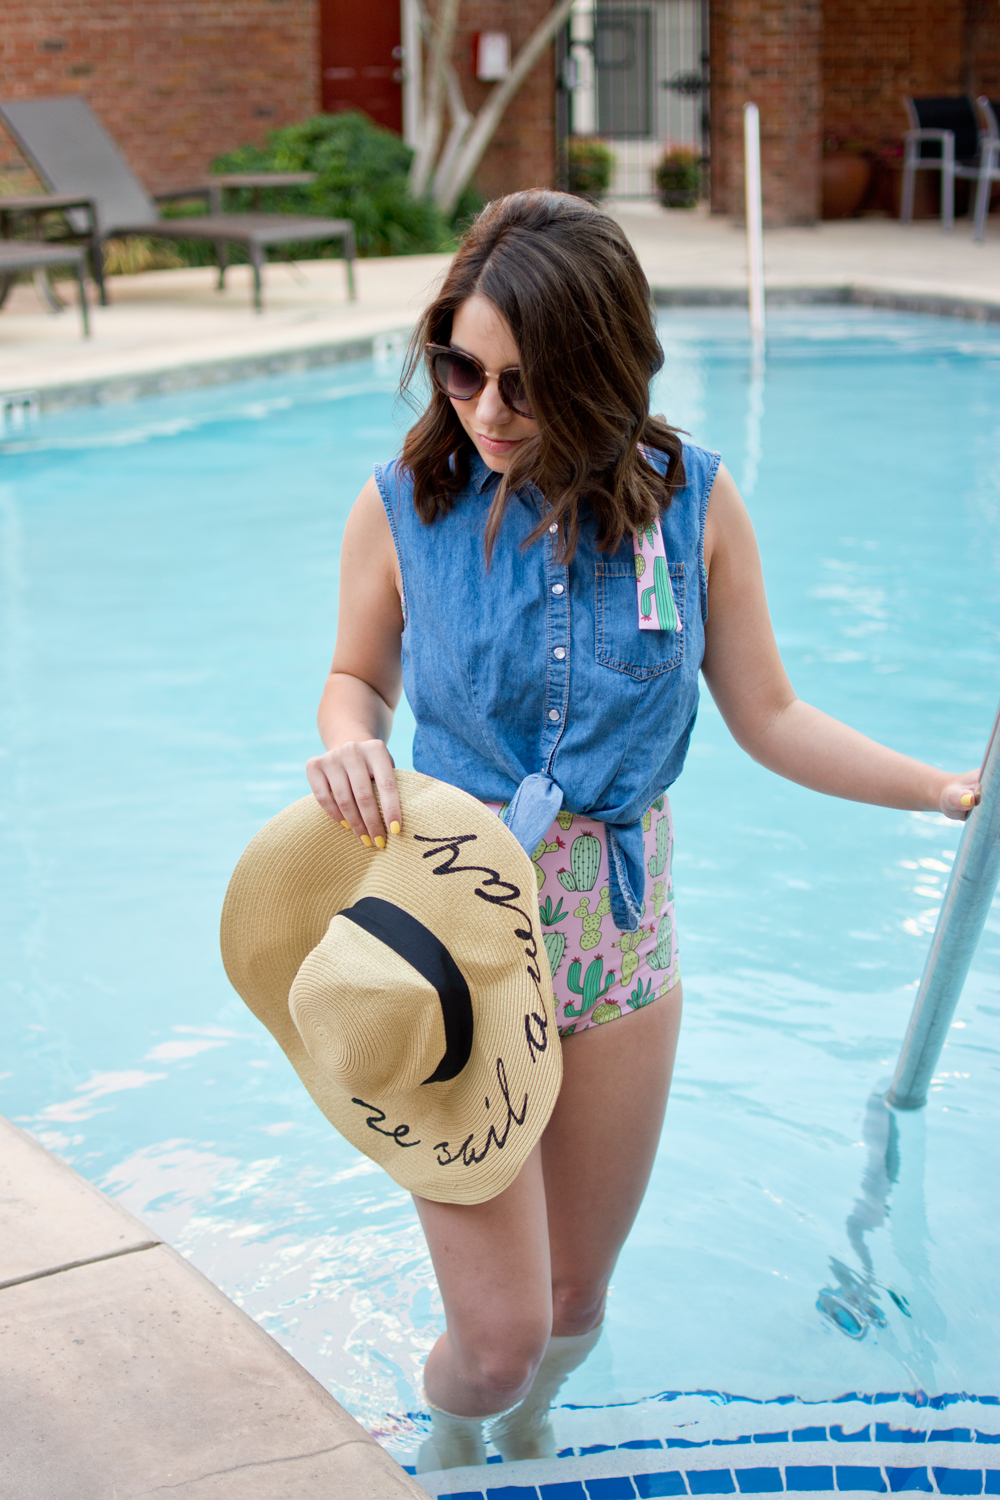 vintage pool outfit, pool day, summer outfit, cursive floppy hat, cactus print swimsuit, blogger, fashion blogger, summer style